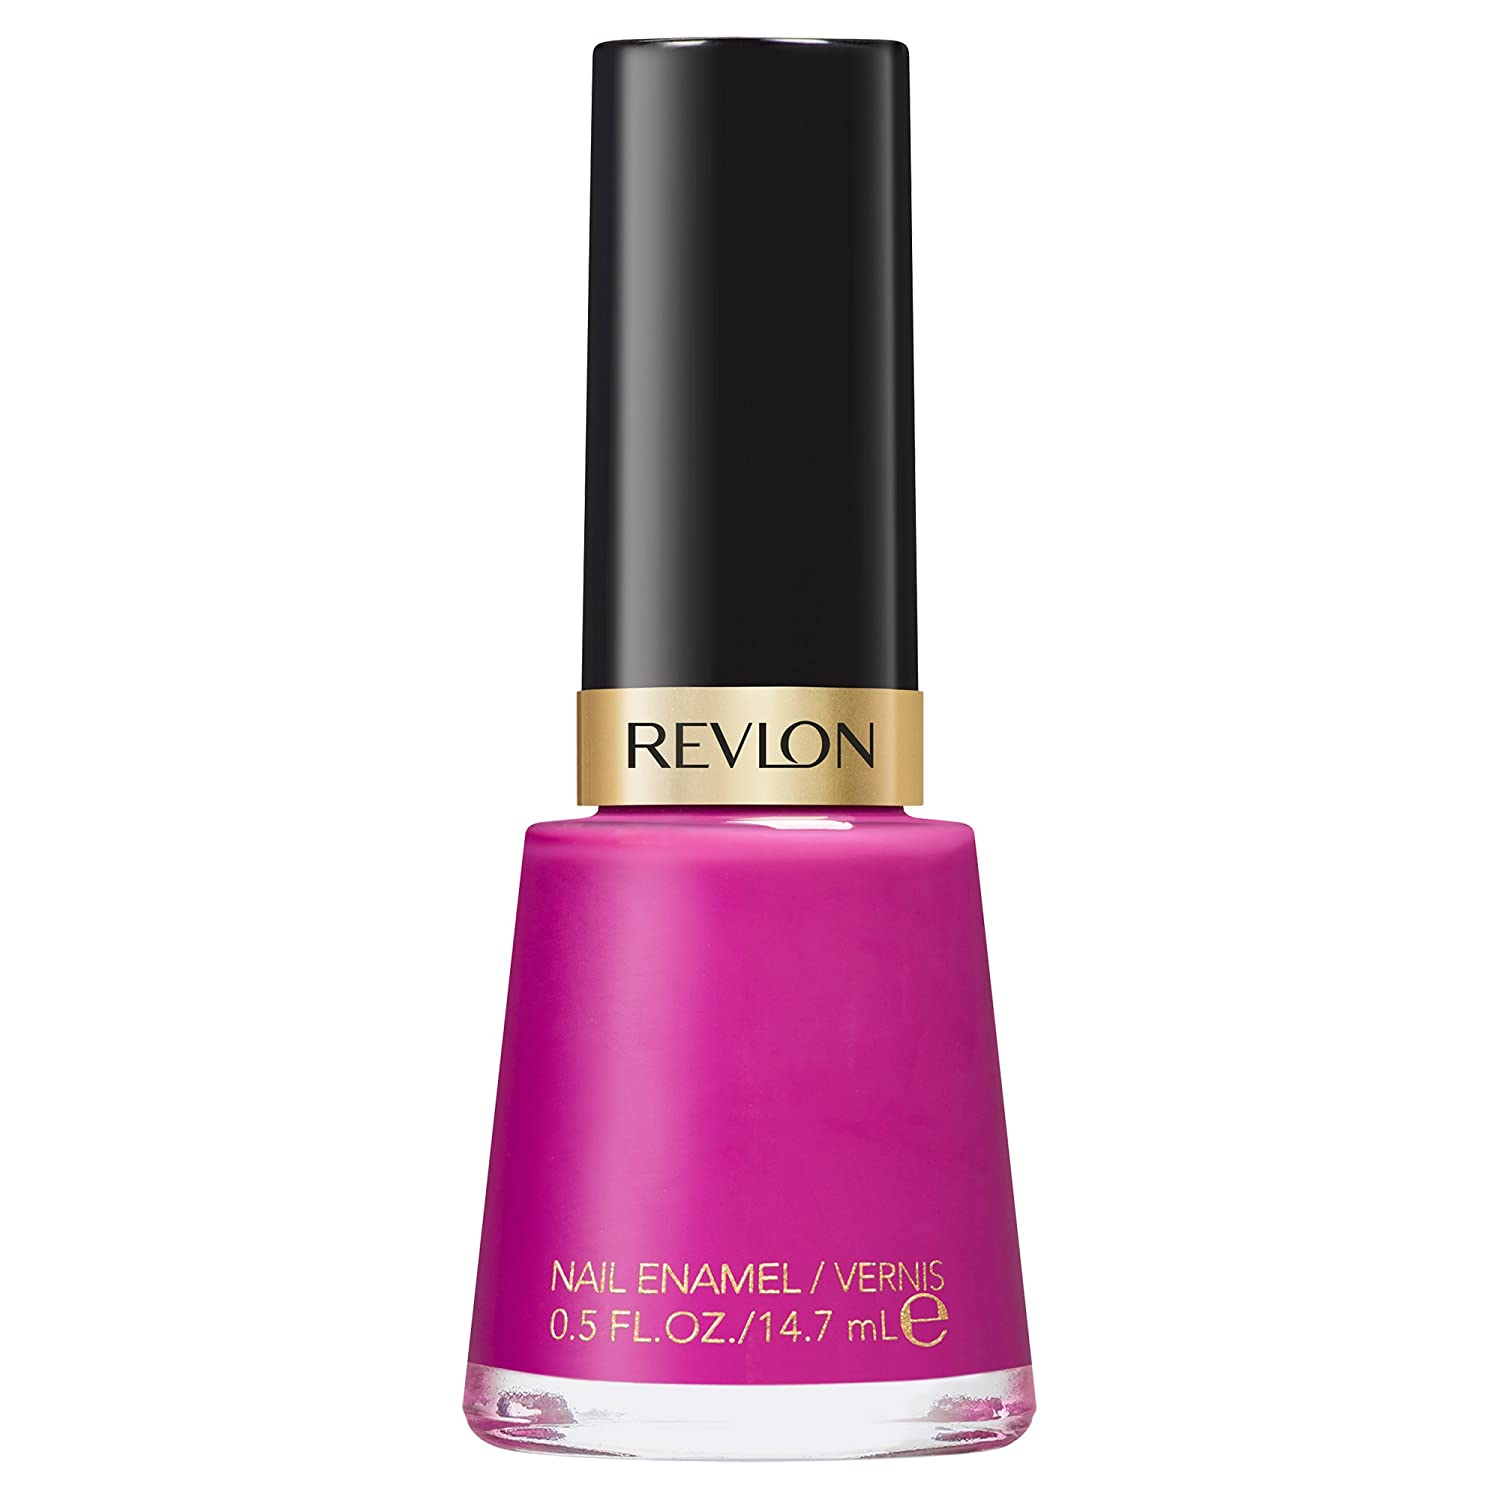 Revlon Nail Enamel, Chip Resistant Nail Polish, Glossy Shine Finish, in Plum/Berry, 917 Plum Seduction, 0.5 oz